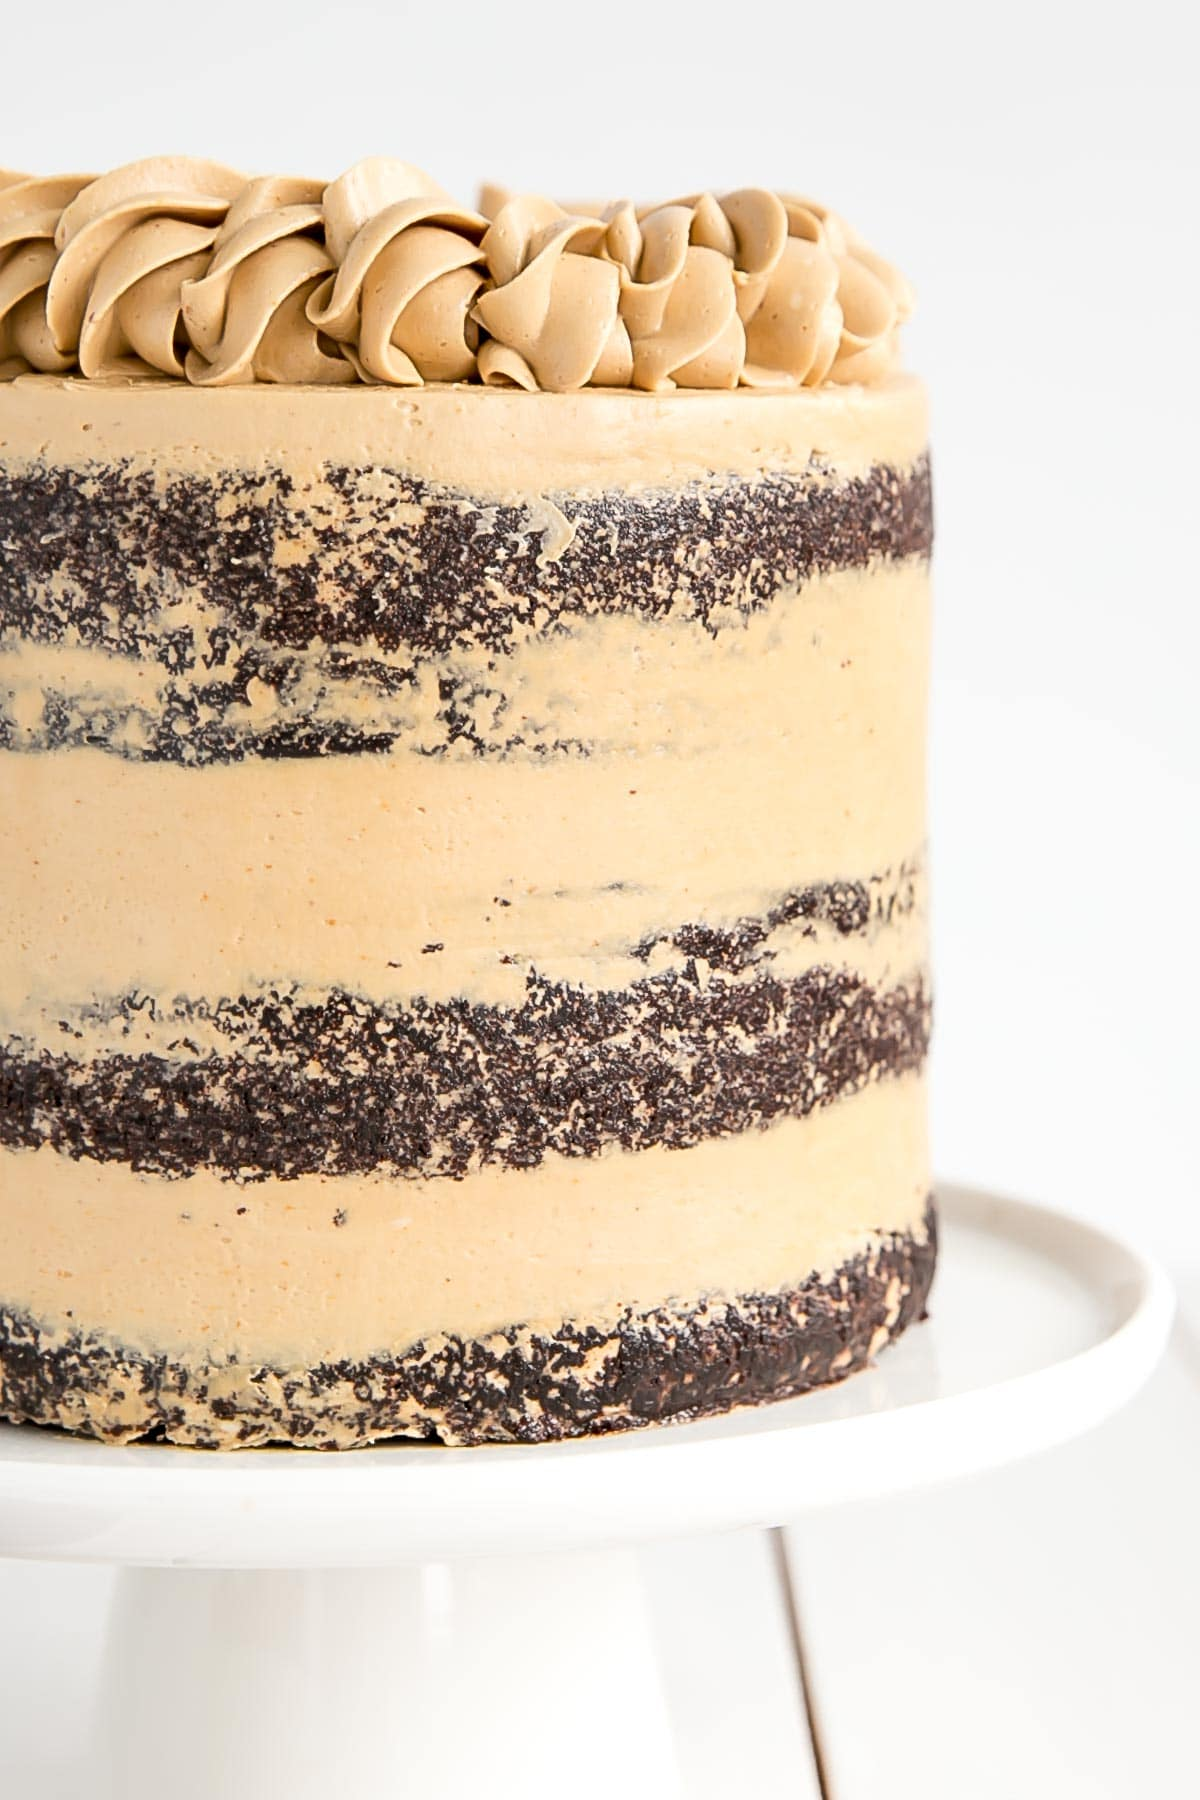 Chocolate layer cake with peanut butter Swiss meringue buttercream.